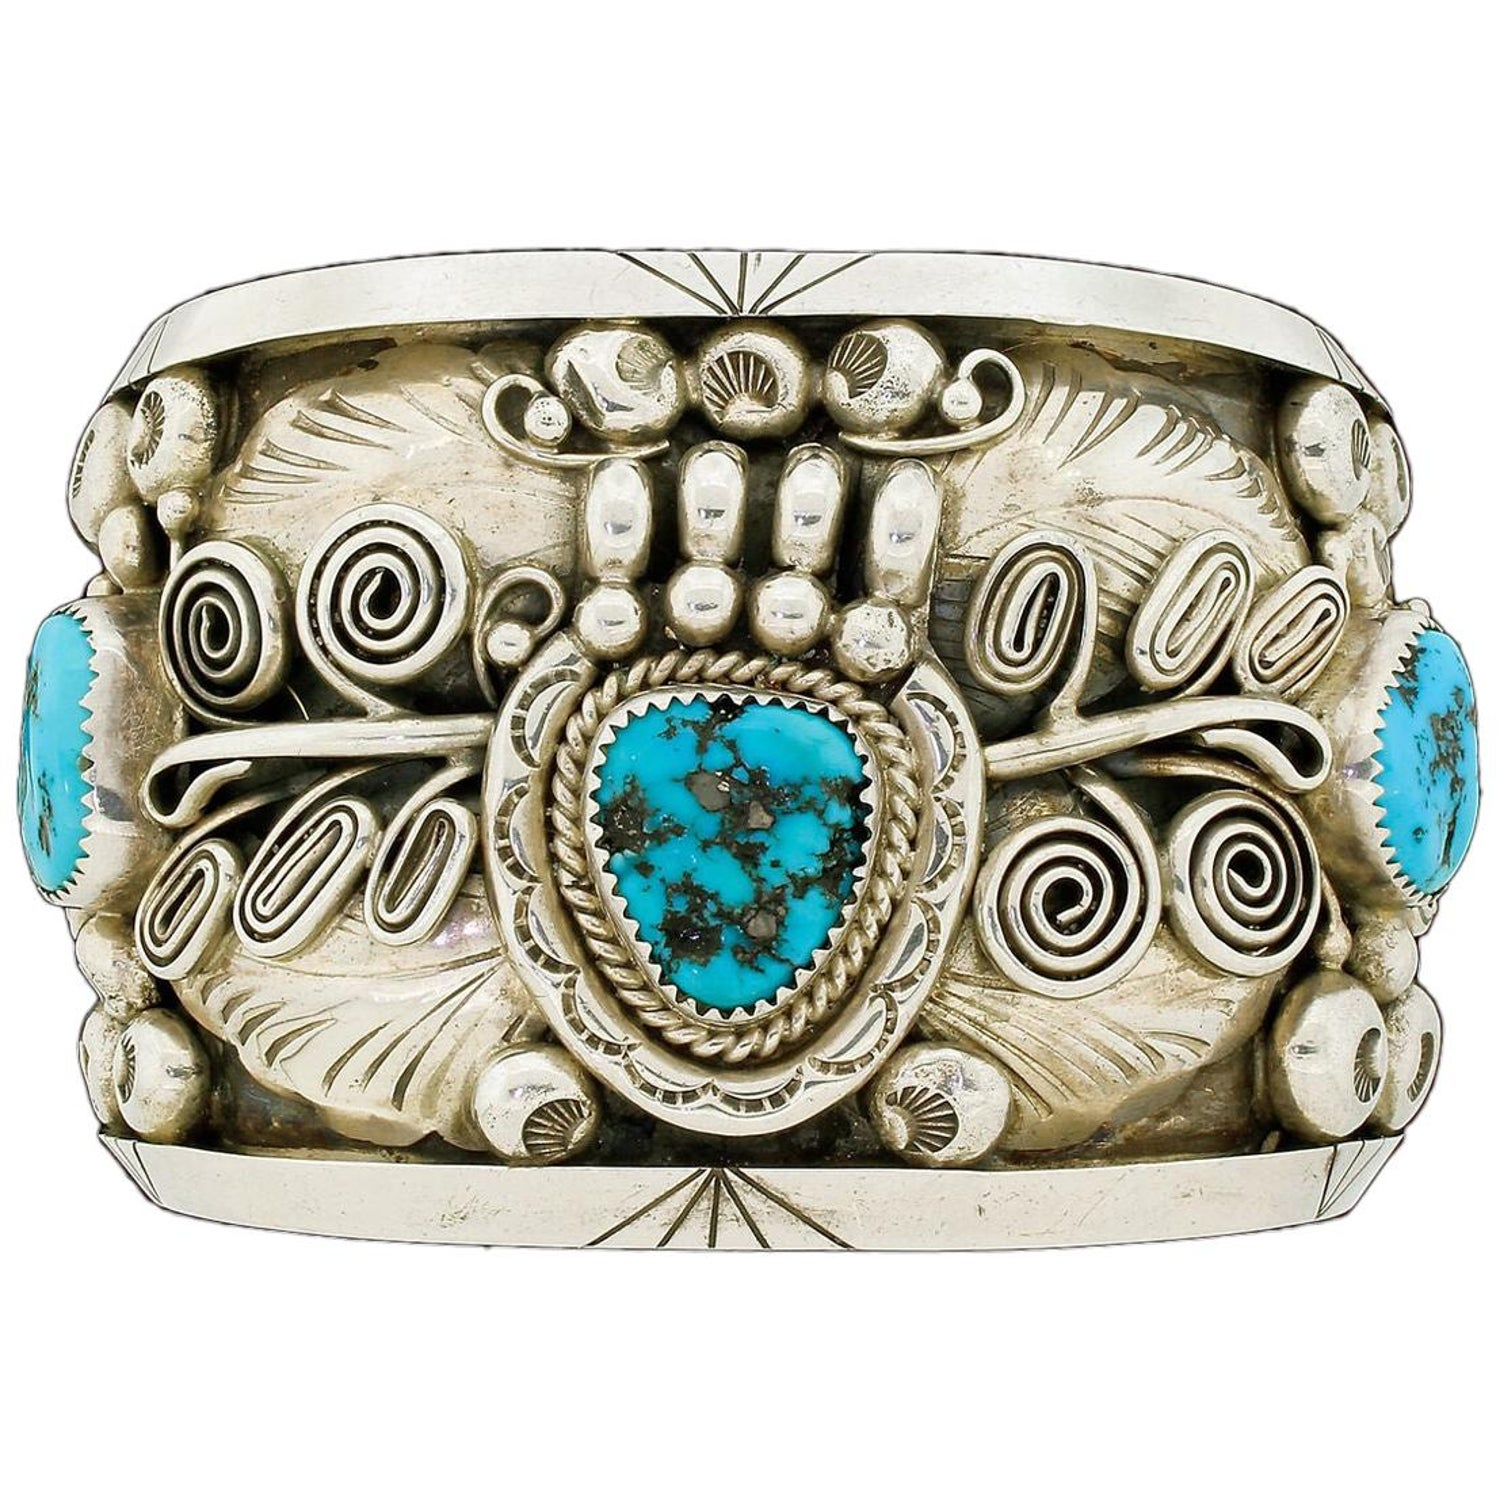 810f5c2e467 Native American Sterling Silver Wide Turquoise Cuff Bracelet Ornate 150G  For Sale at 1stdibs